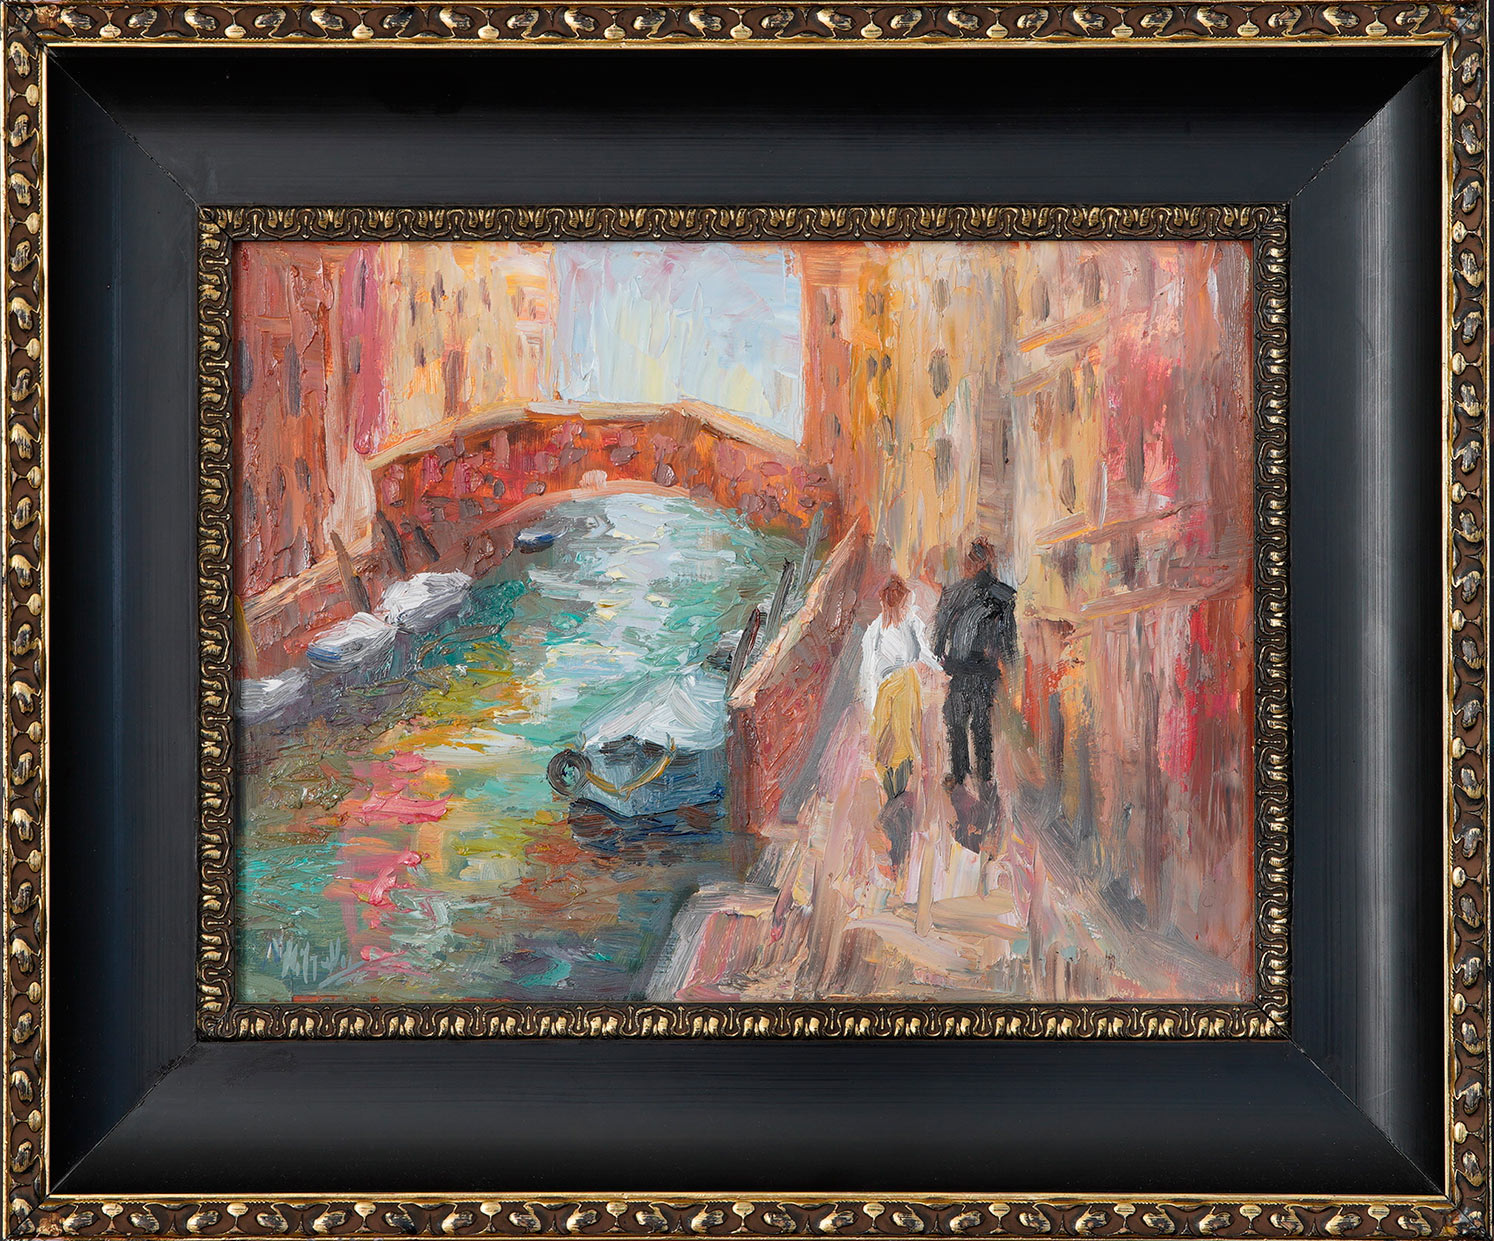 Italy, contemporary impressionist, dallas texas artist, travel art, Niki Gulley paintings